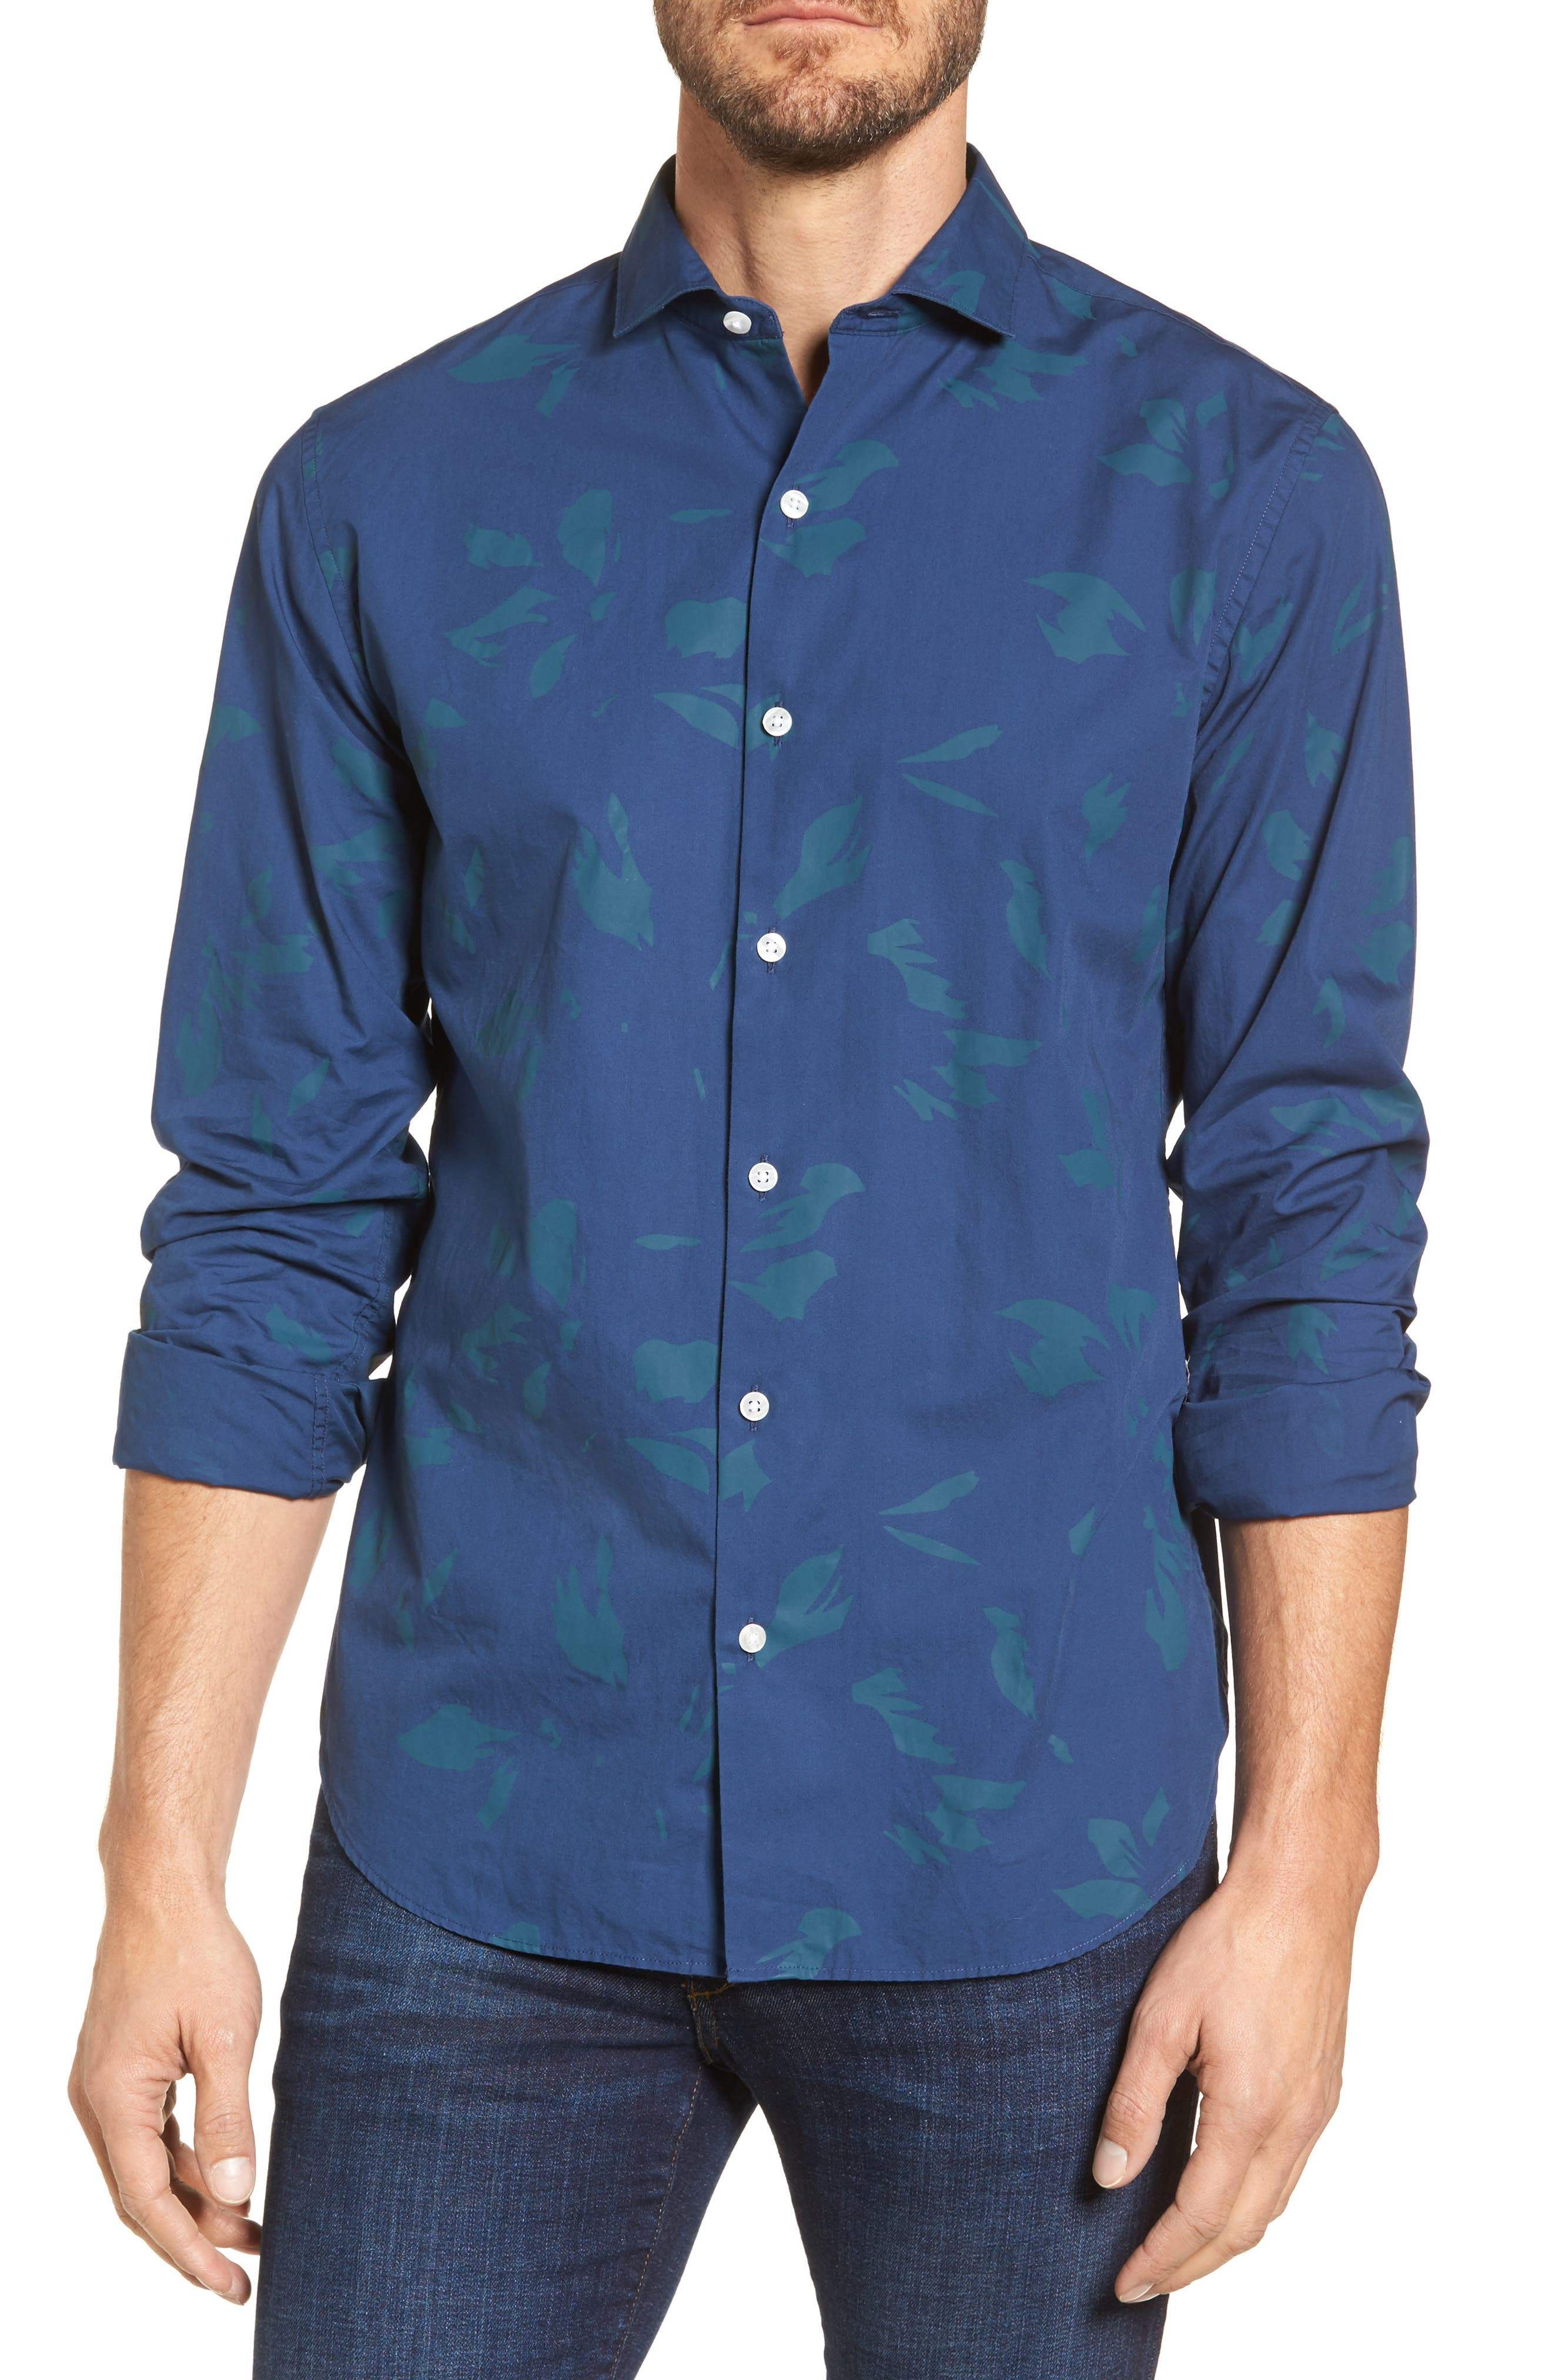 Alternate Image 1 Selected - Bonobos Unbutton Down Slim Fit Abstract Print Sport Shirt